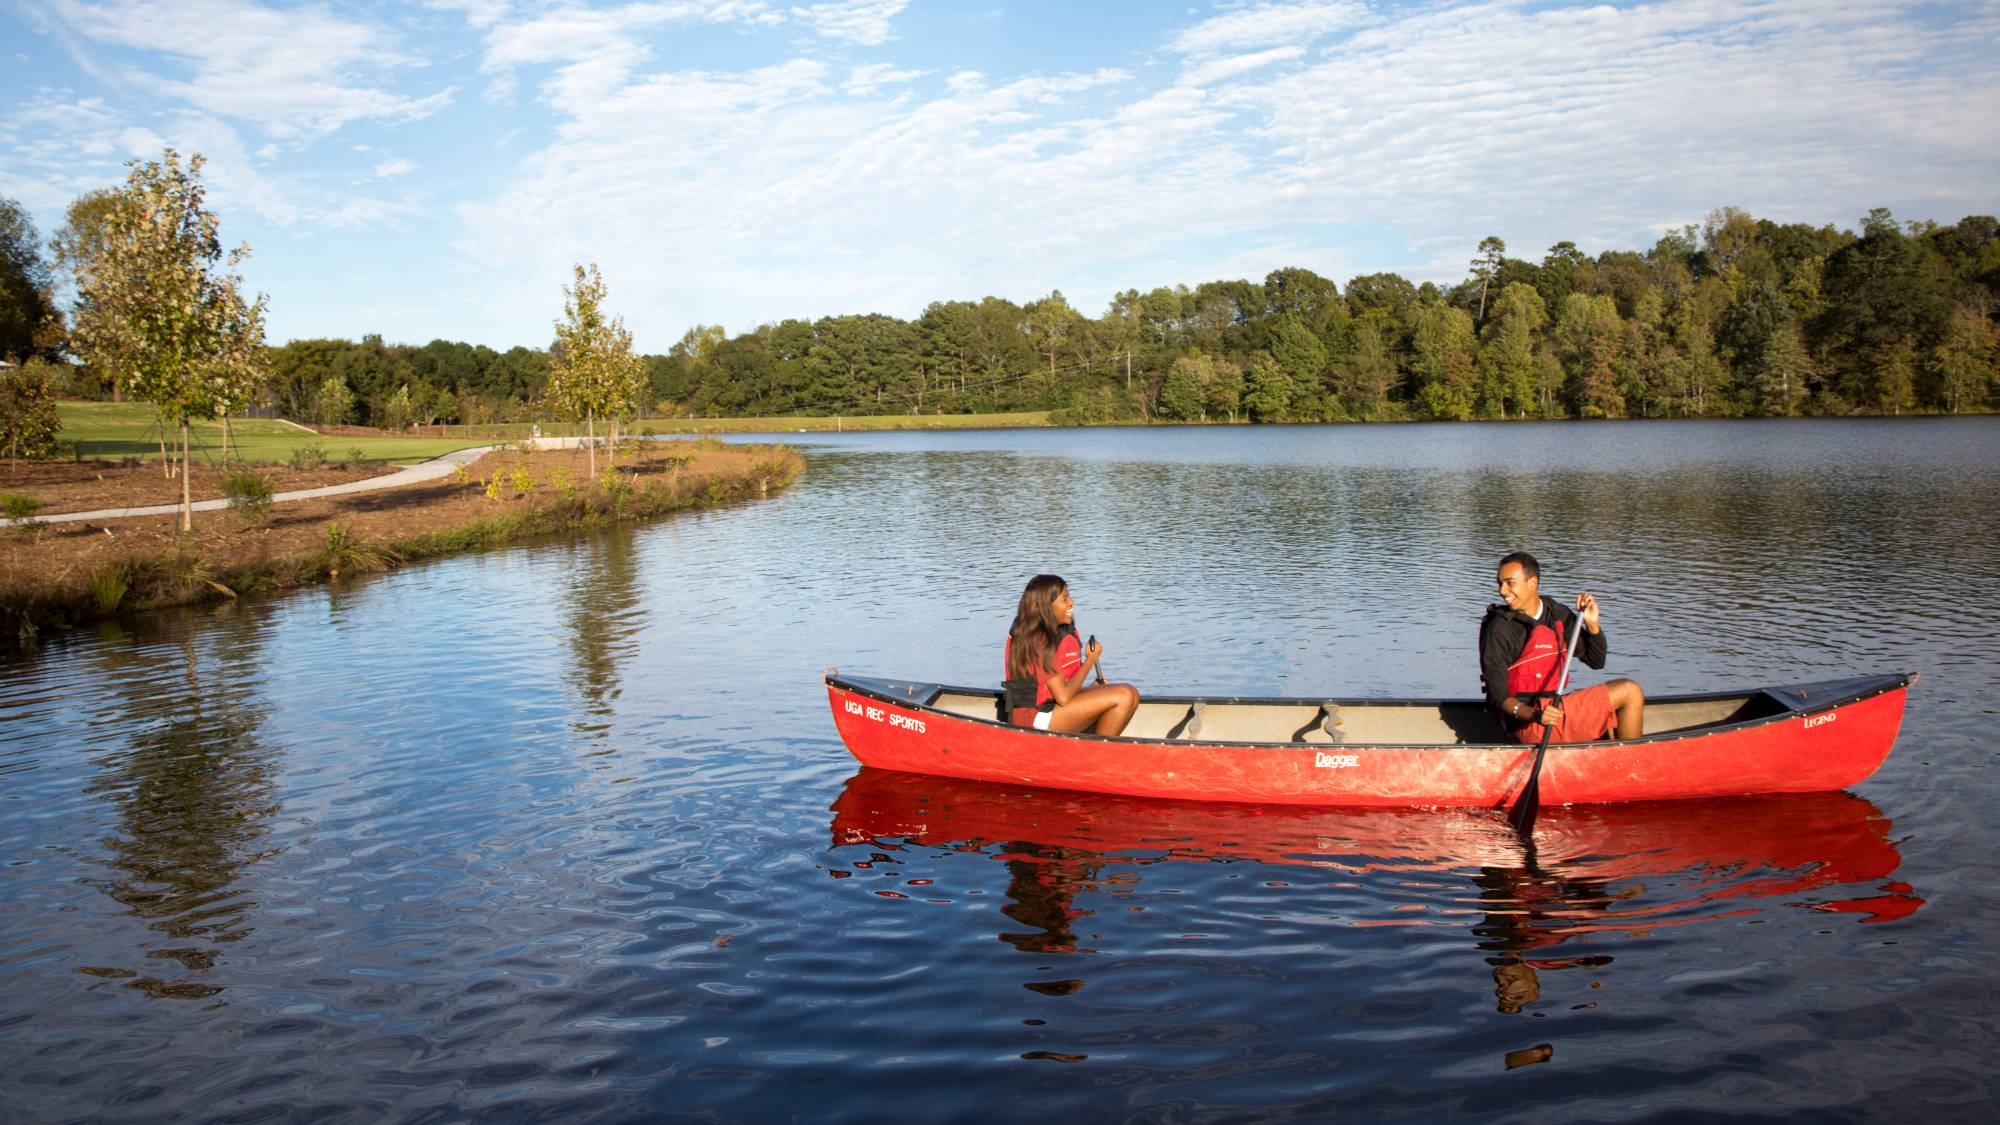 Two people smile at each other while paddling a canoe on a lake under a partly cloudy blue sky